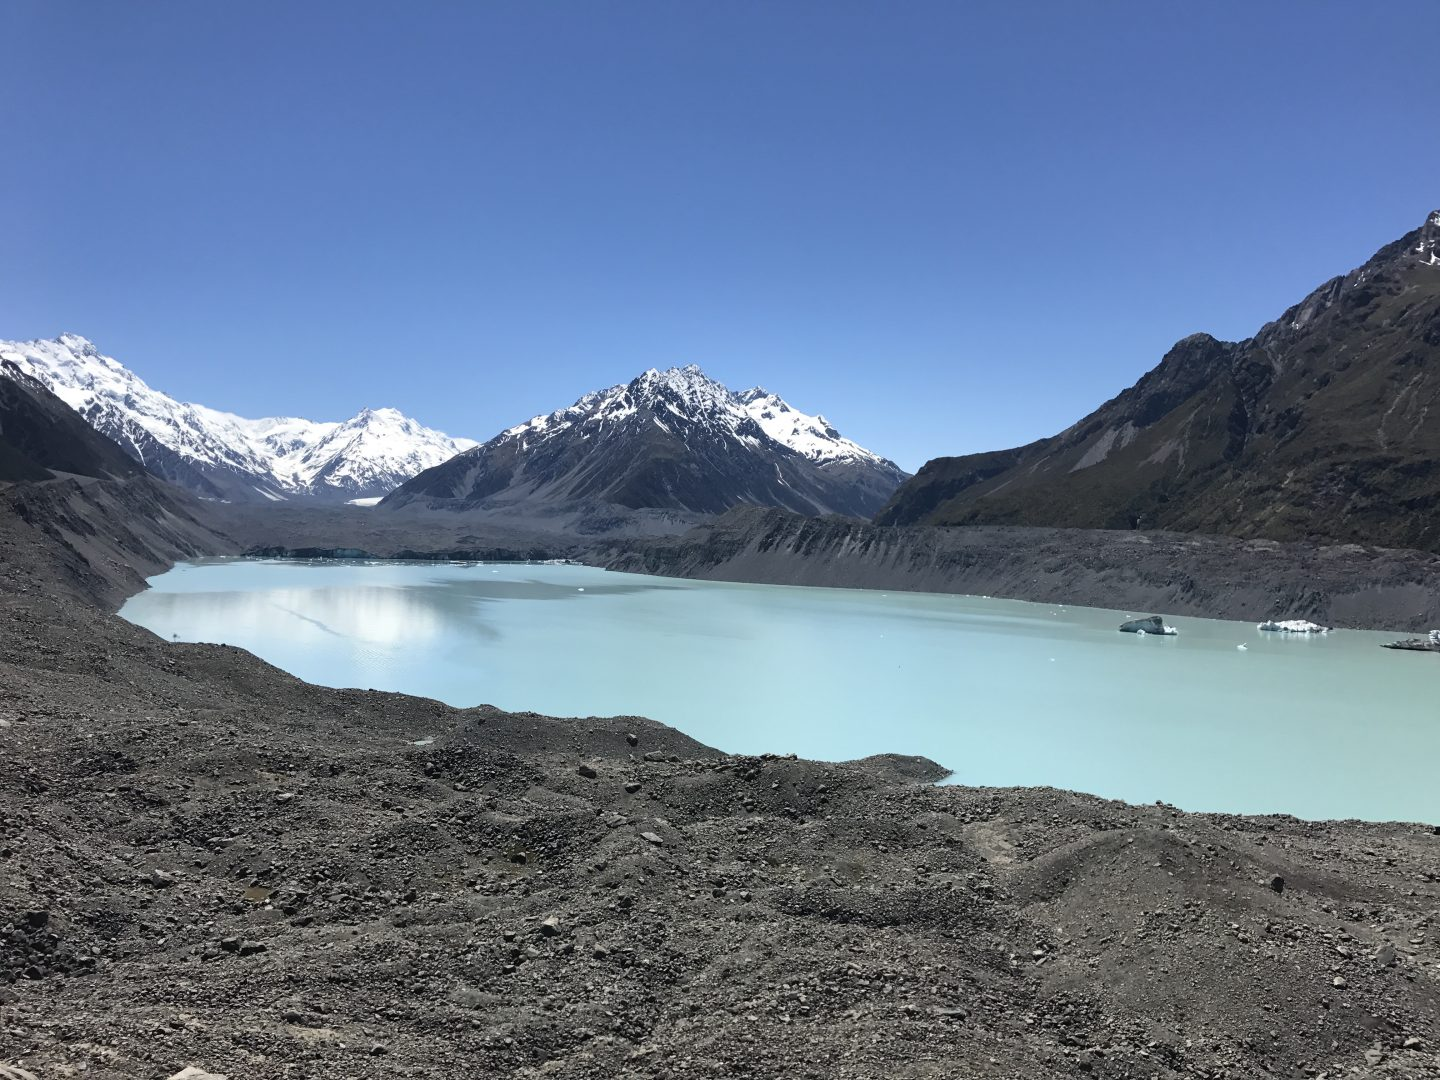 Tasman Lake, Aoraki / Mount Cook National Park